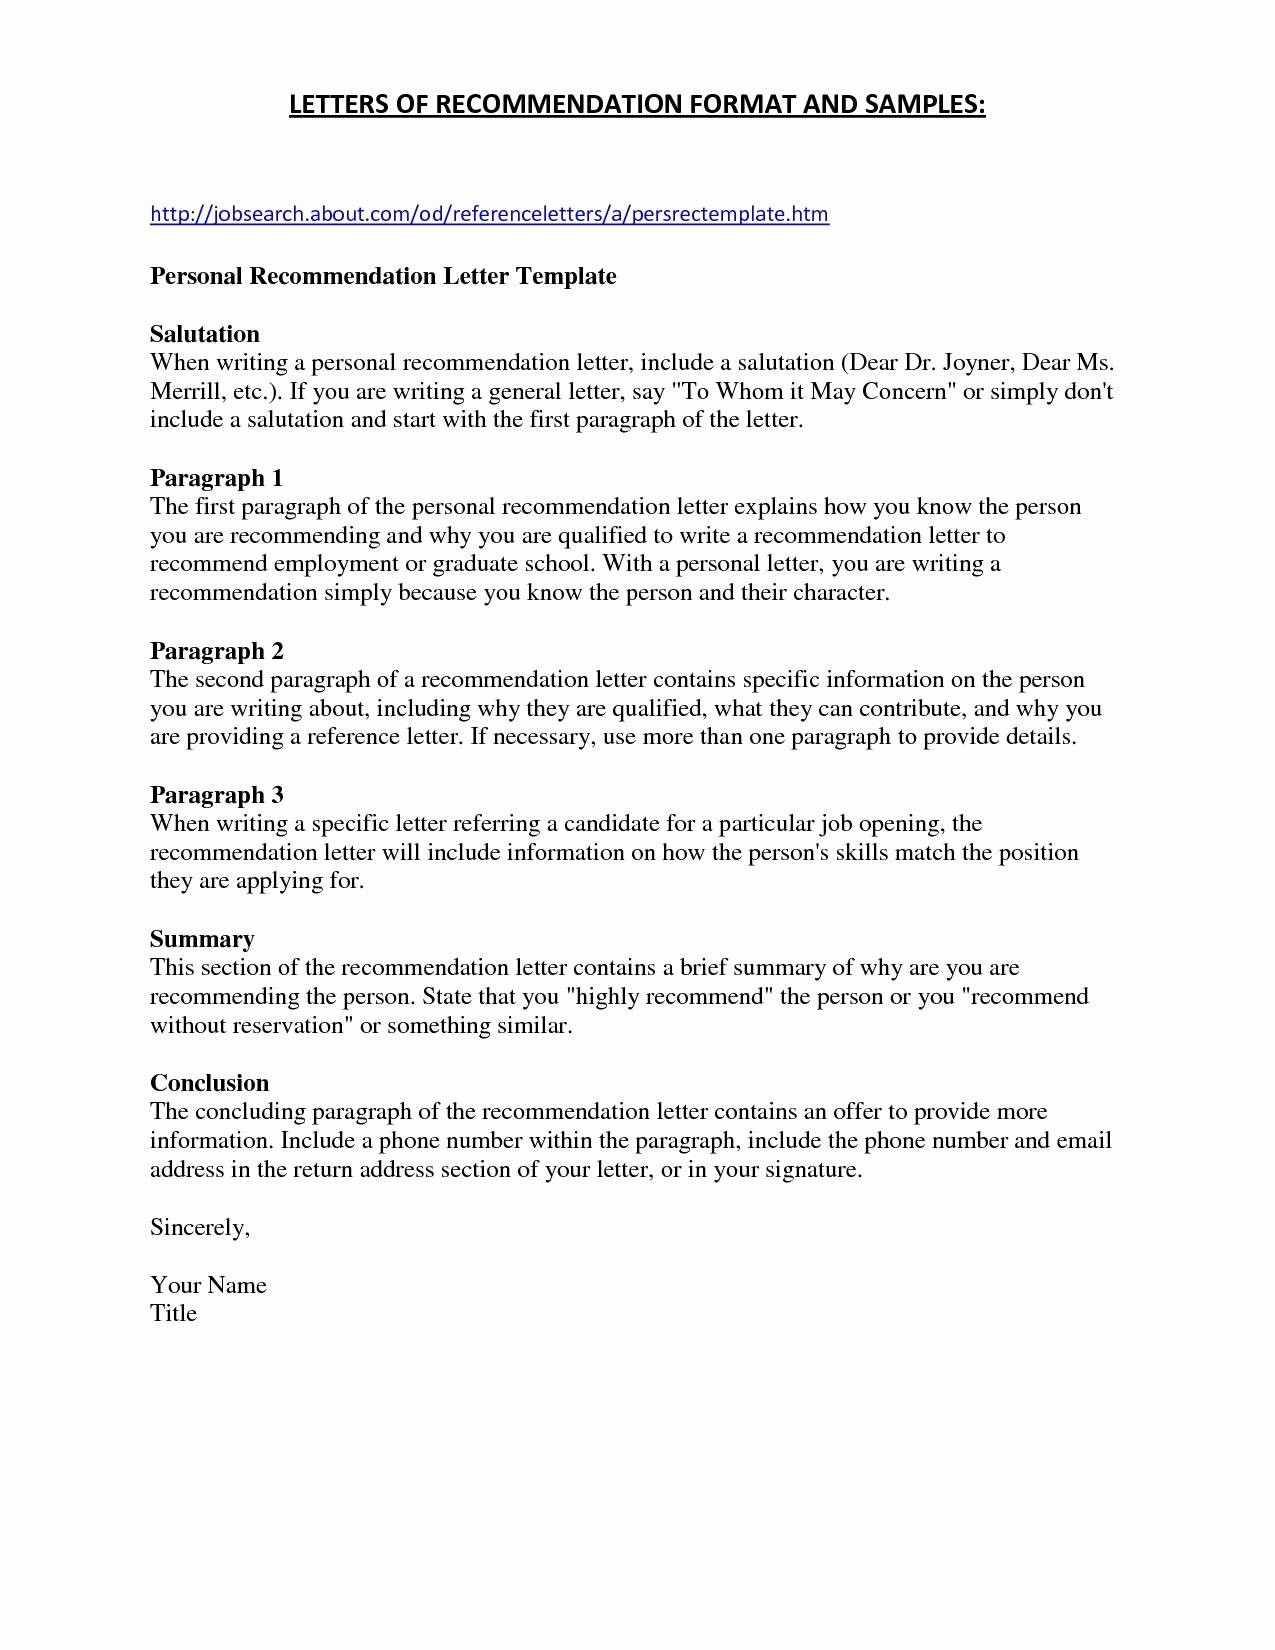 Rent free letter template for mortgage samples letter templates rent free letter template for mortgage how to write a cover letter for a rental altavistaventures Images